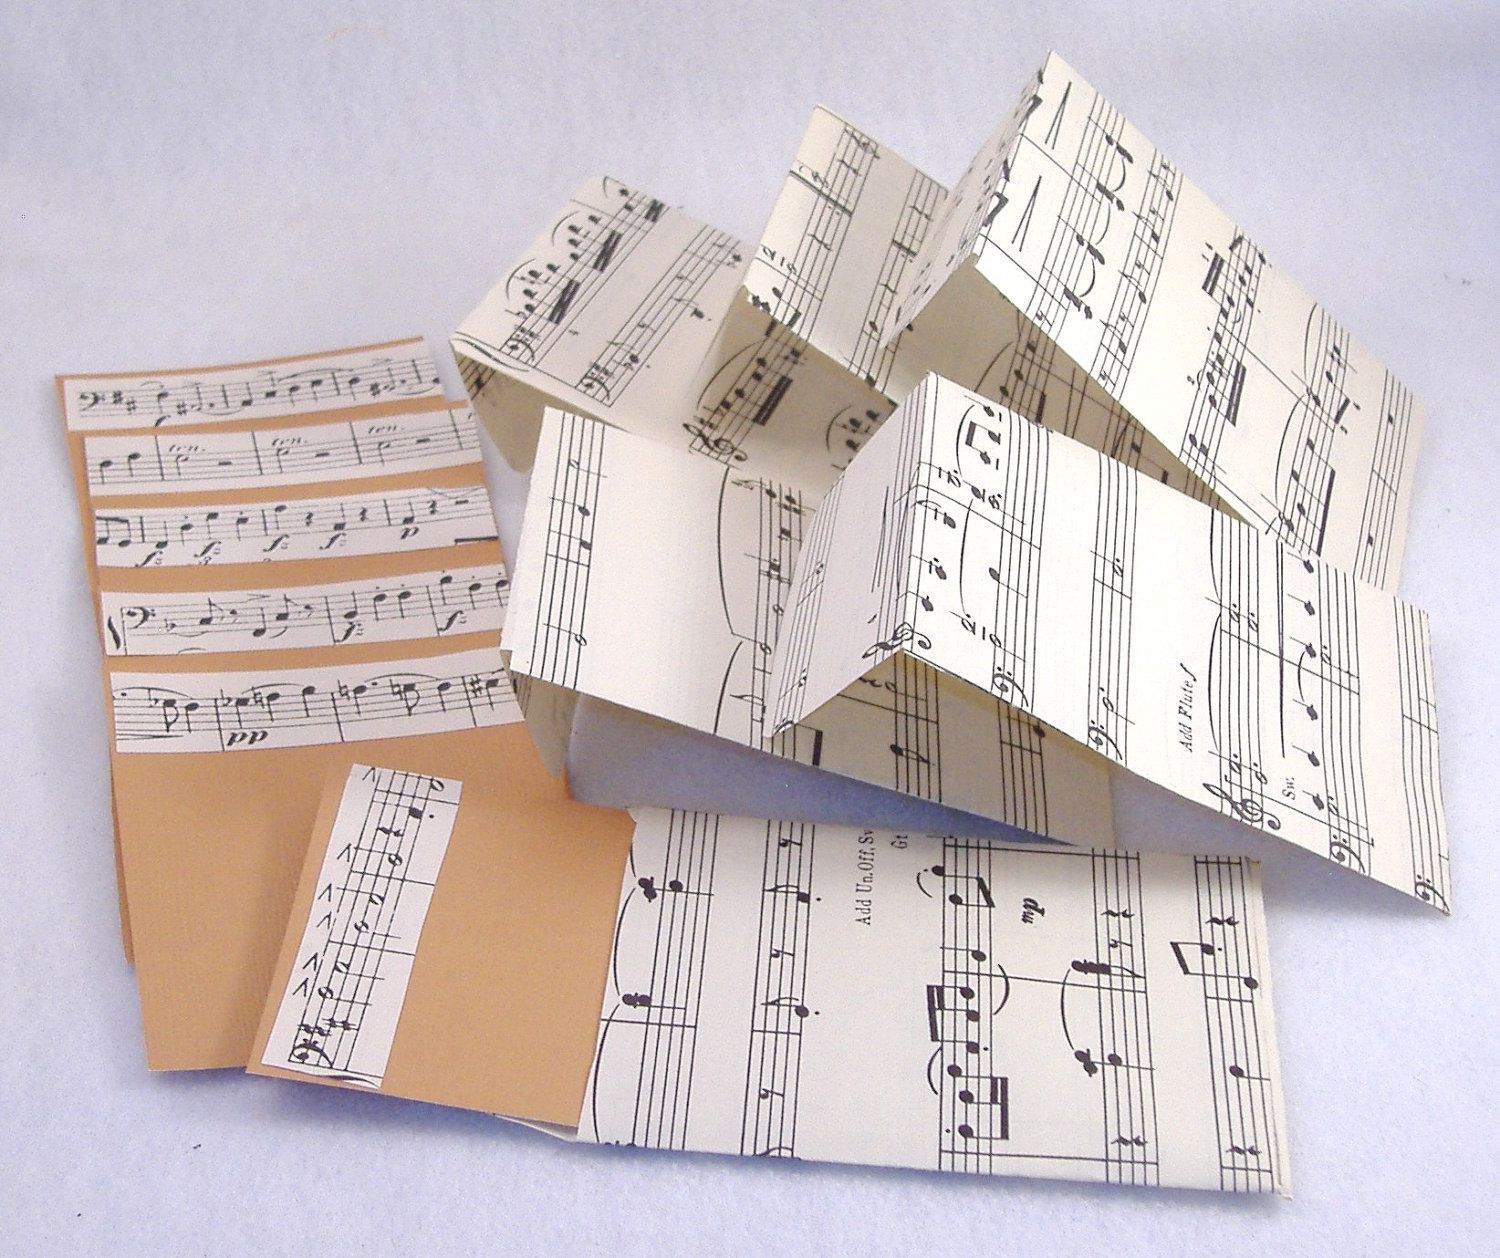 6 Blank Decorated Cards & Matching Envelopes - Repurposed Music Score Paper and Light Brown Flat Card. $3.75, via Etsy.